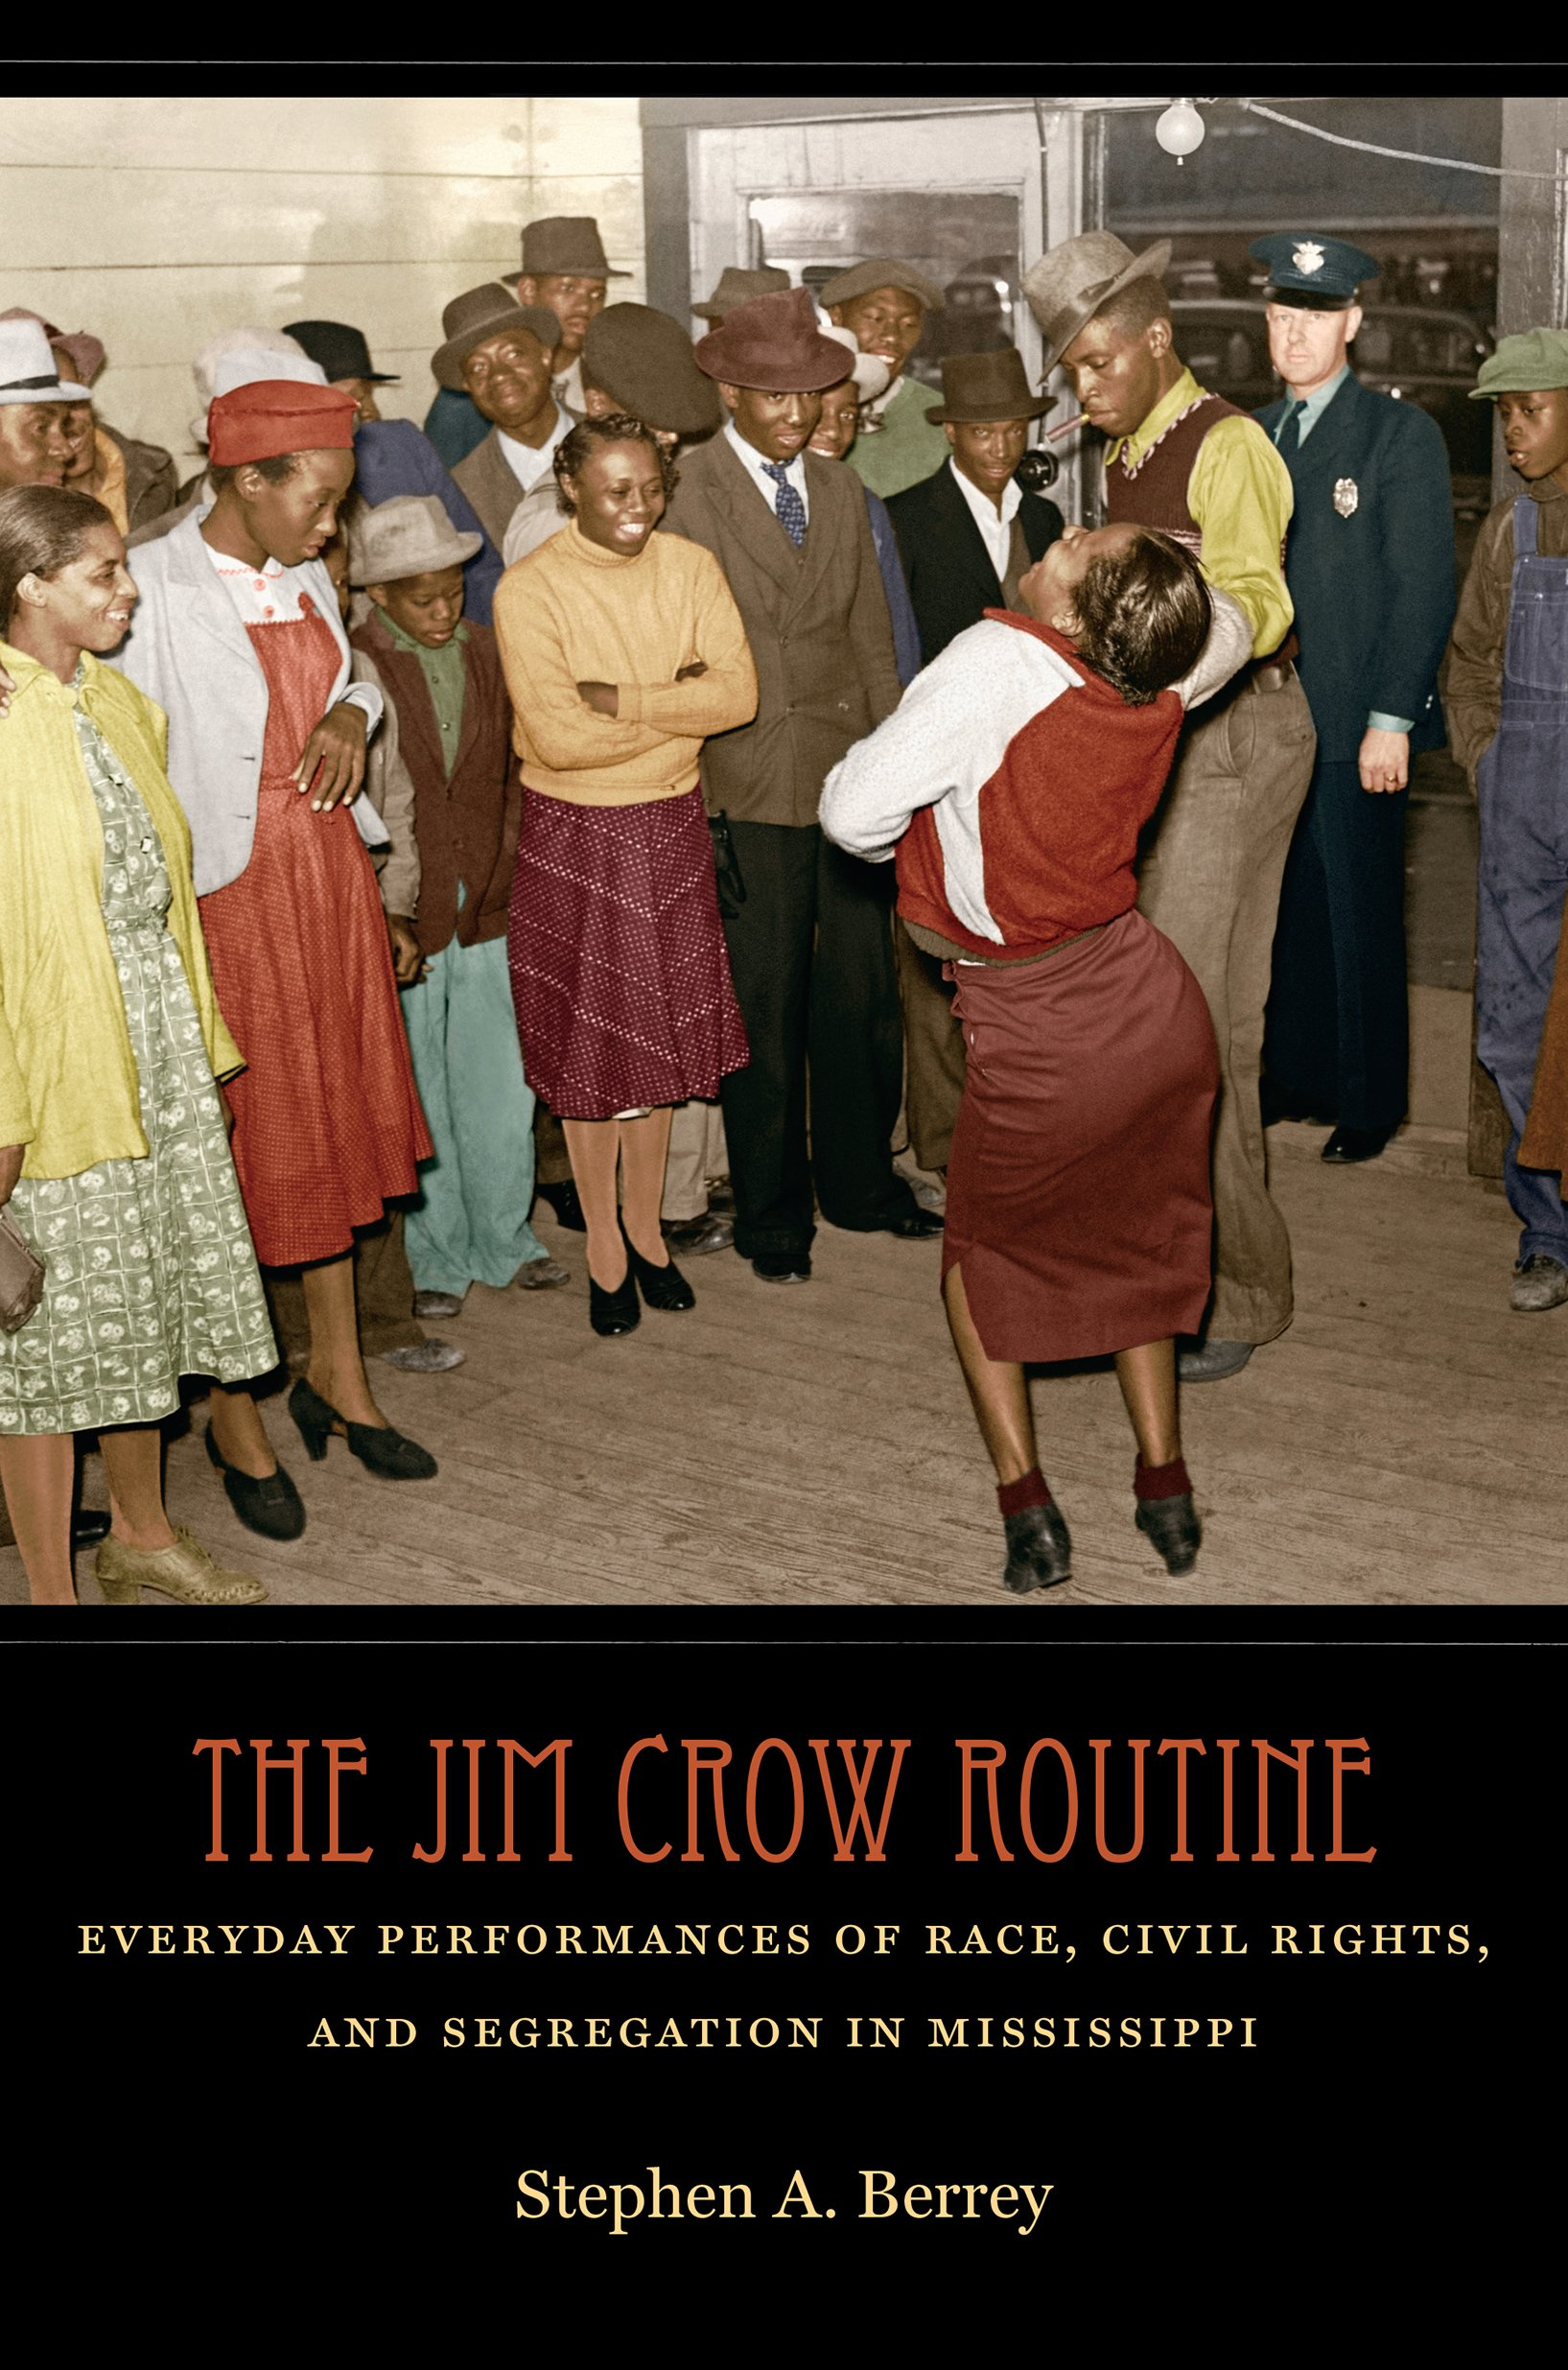 The Jim Crow Routine: Everyday Performances Of Race, Civil Rights, And  Segregation In Mississippi: Stephen A Berrey: 9781469620930: Amazon:  Books